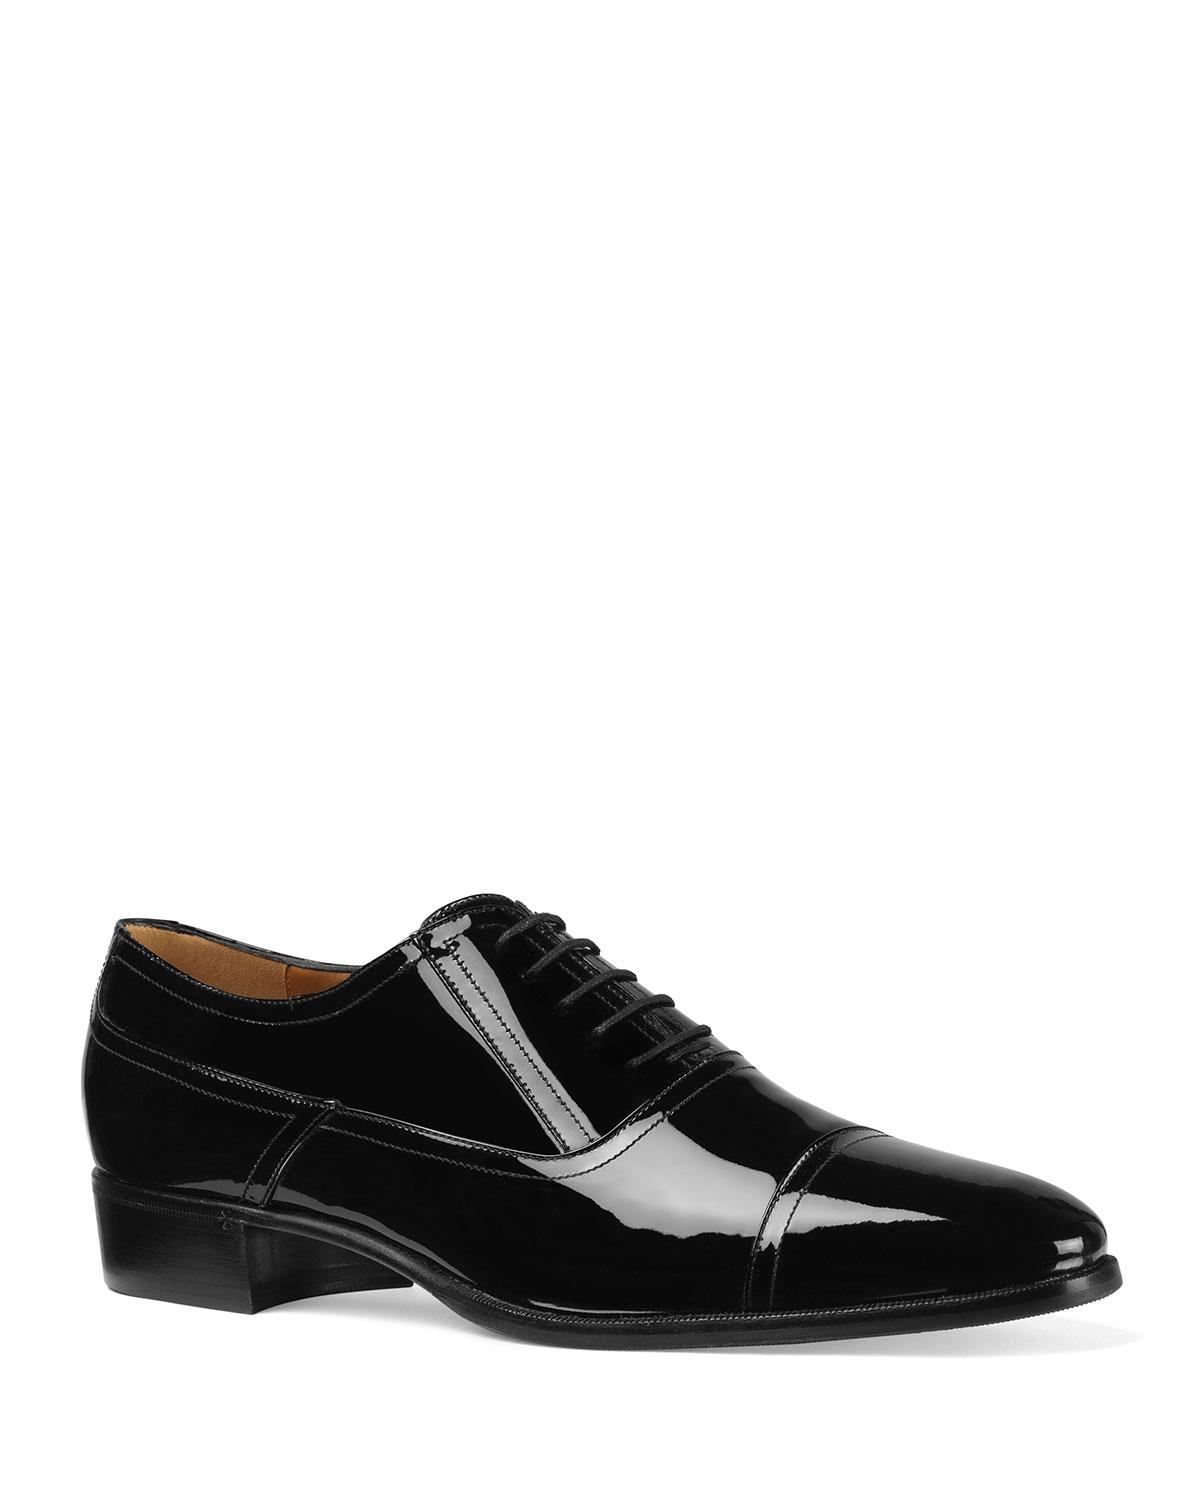 fe5327bc457dc Lyst - Gucci Men s Patent Leather Lace-up Shoes in Black for Men